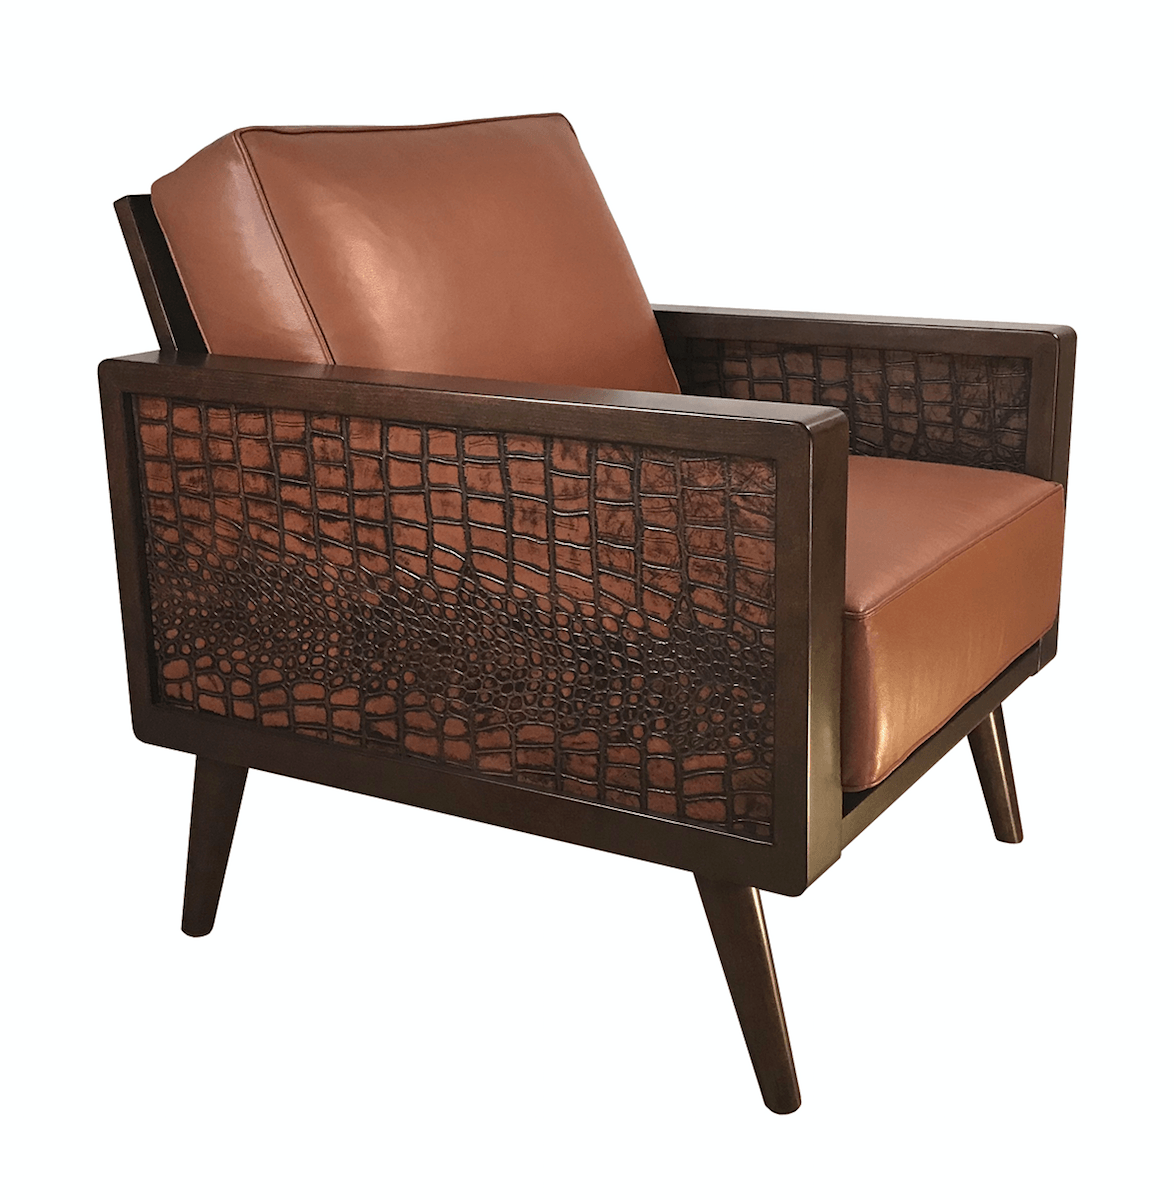 Magnificent Leather Croc Mid Century Modern Lounge Chair Short Links Chair Design For Home Short Linksinfo